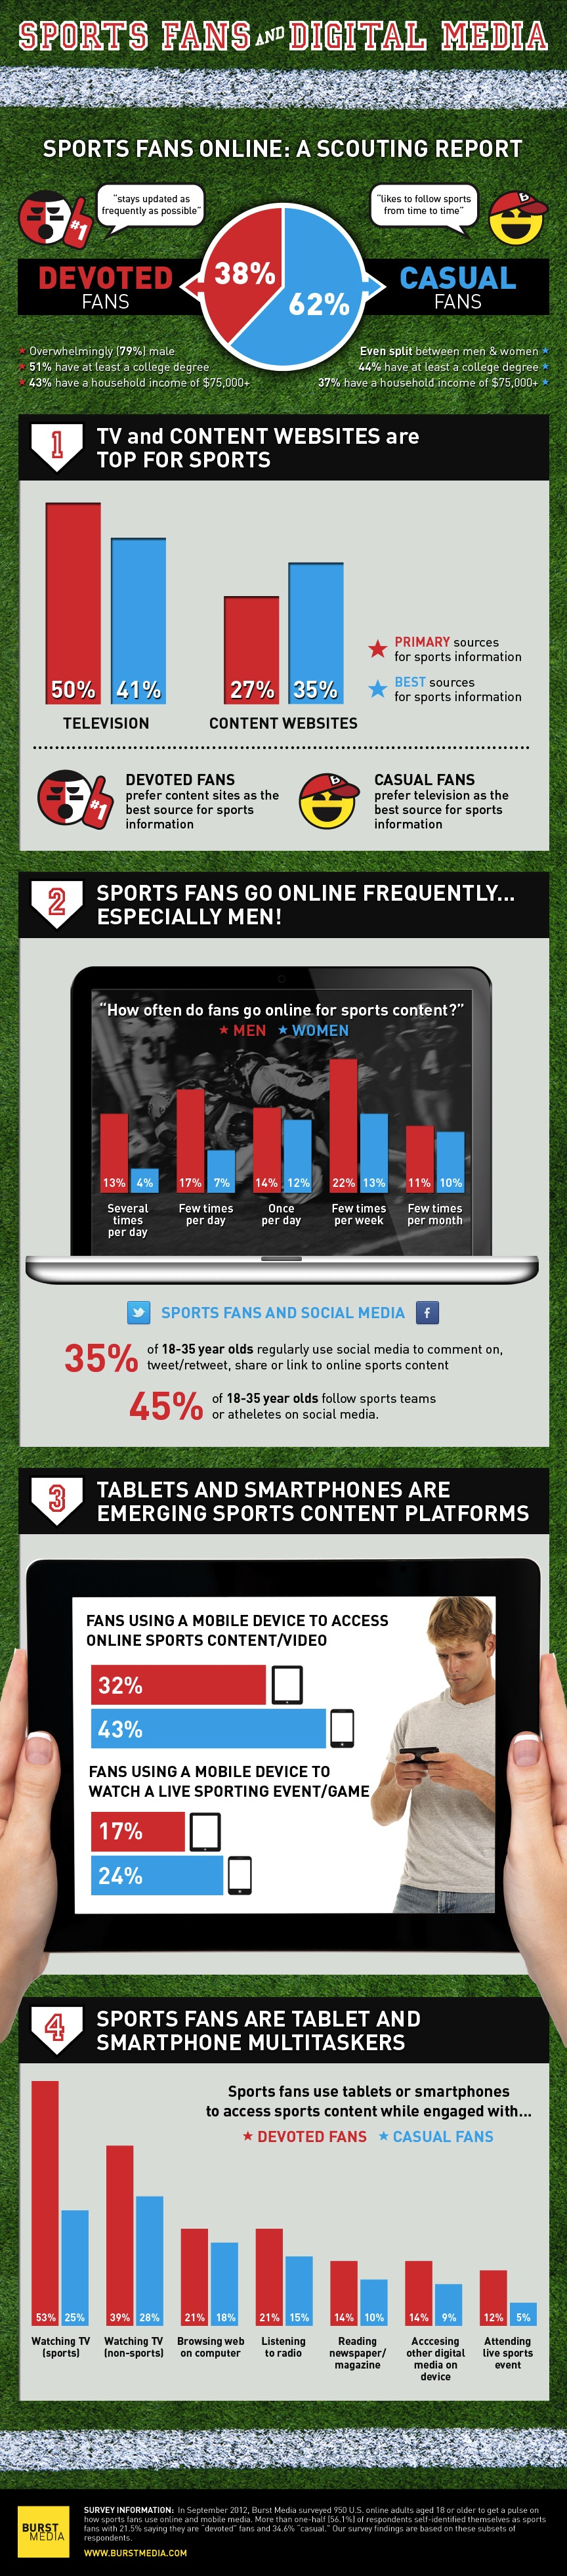 Infographic - Scouting Online Sports Fans